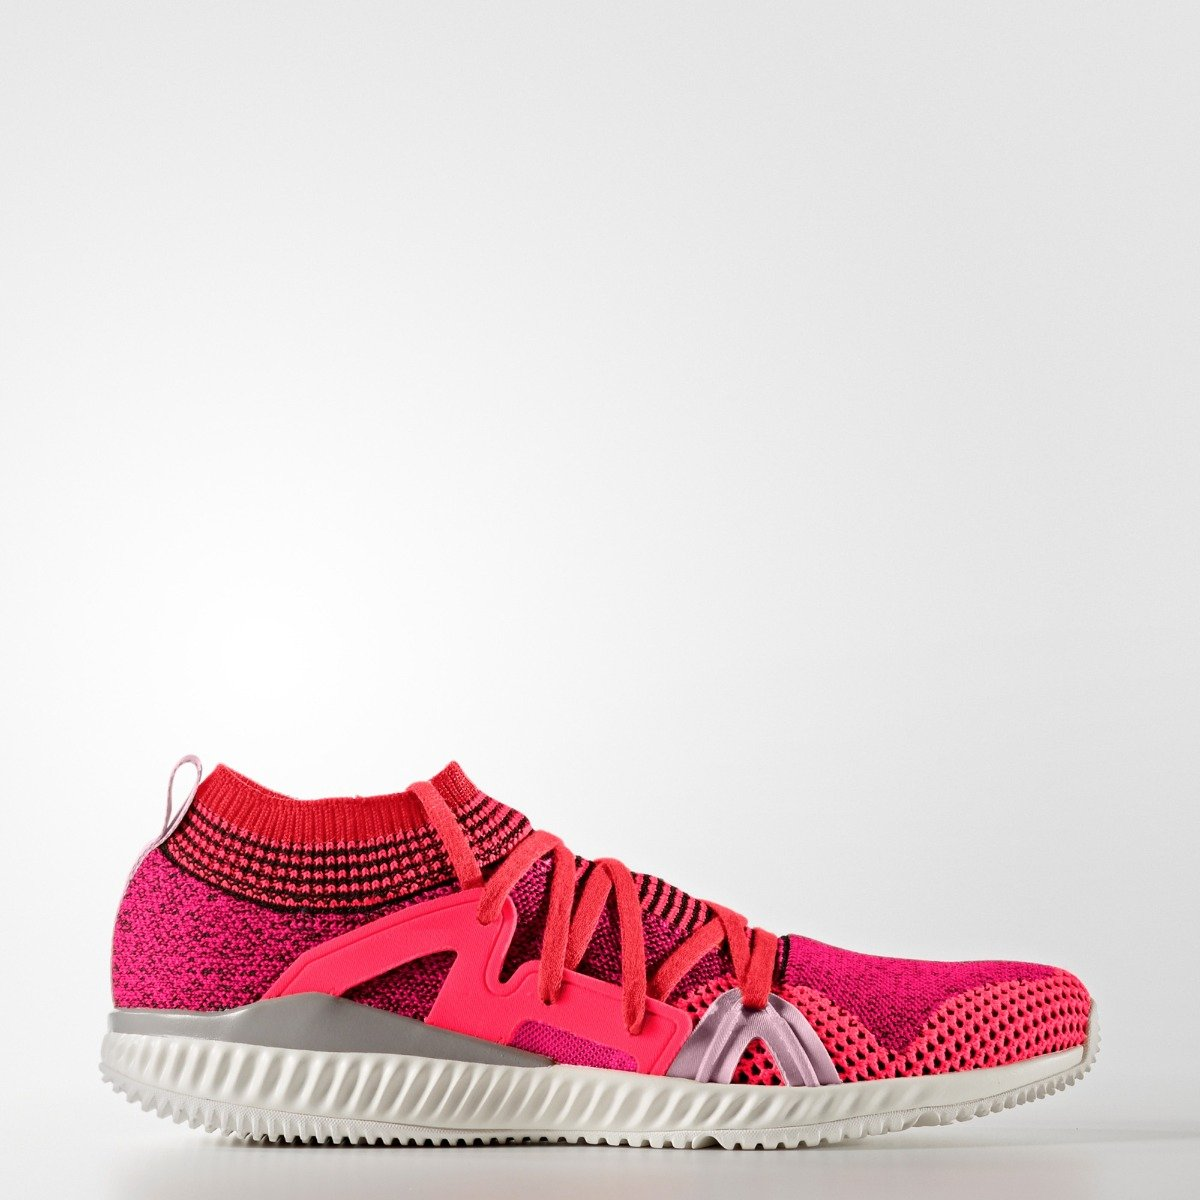 be9c51a9cbed4 Women s Adidas By Stella McCartney Crazymove Bounce Pink Passion ...